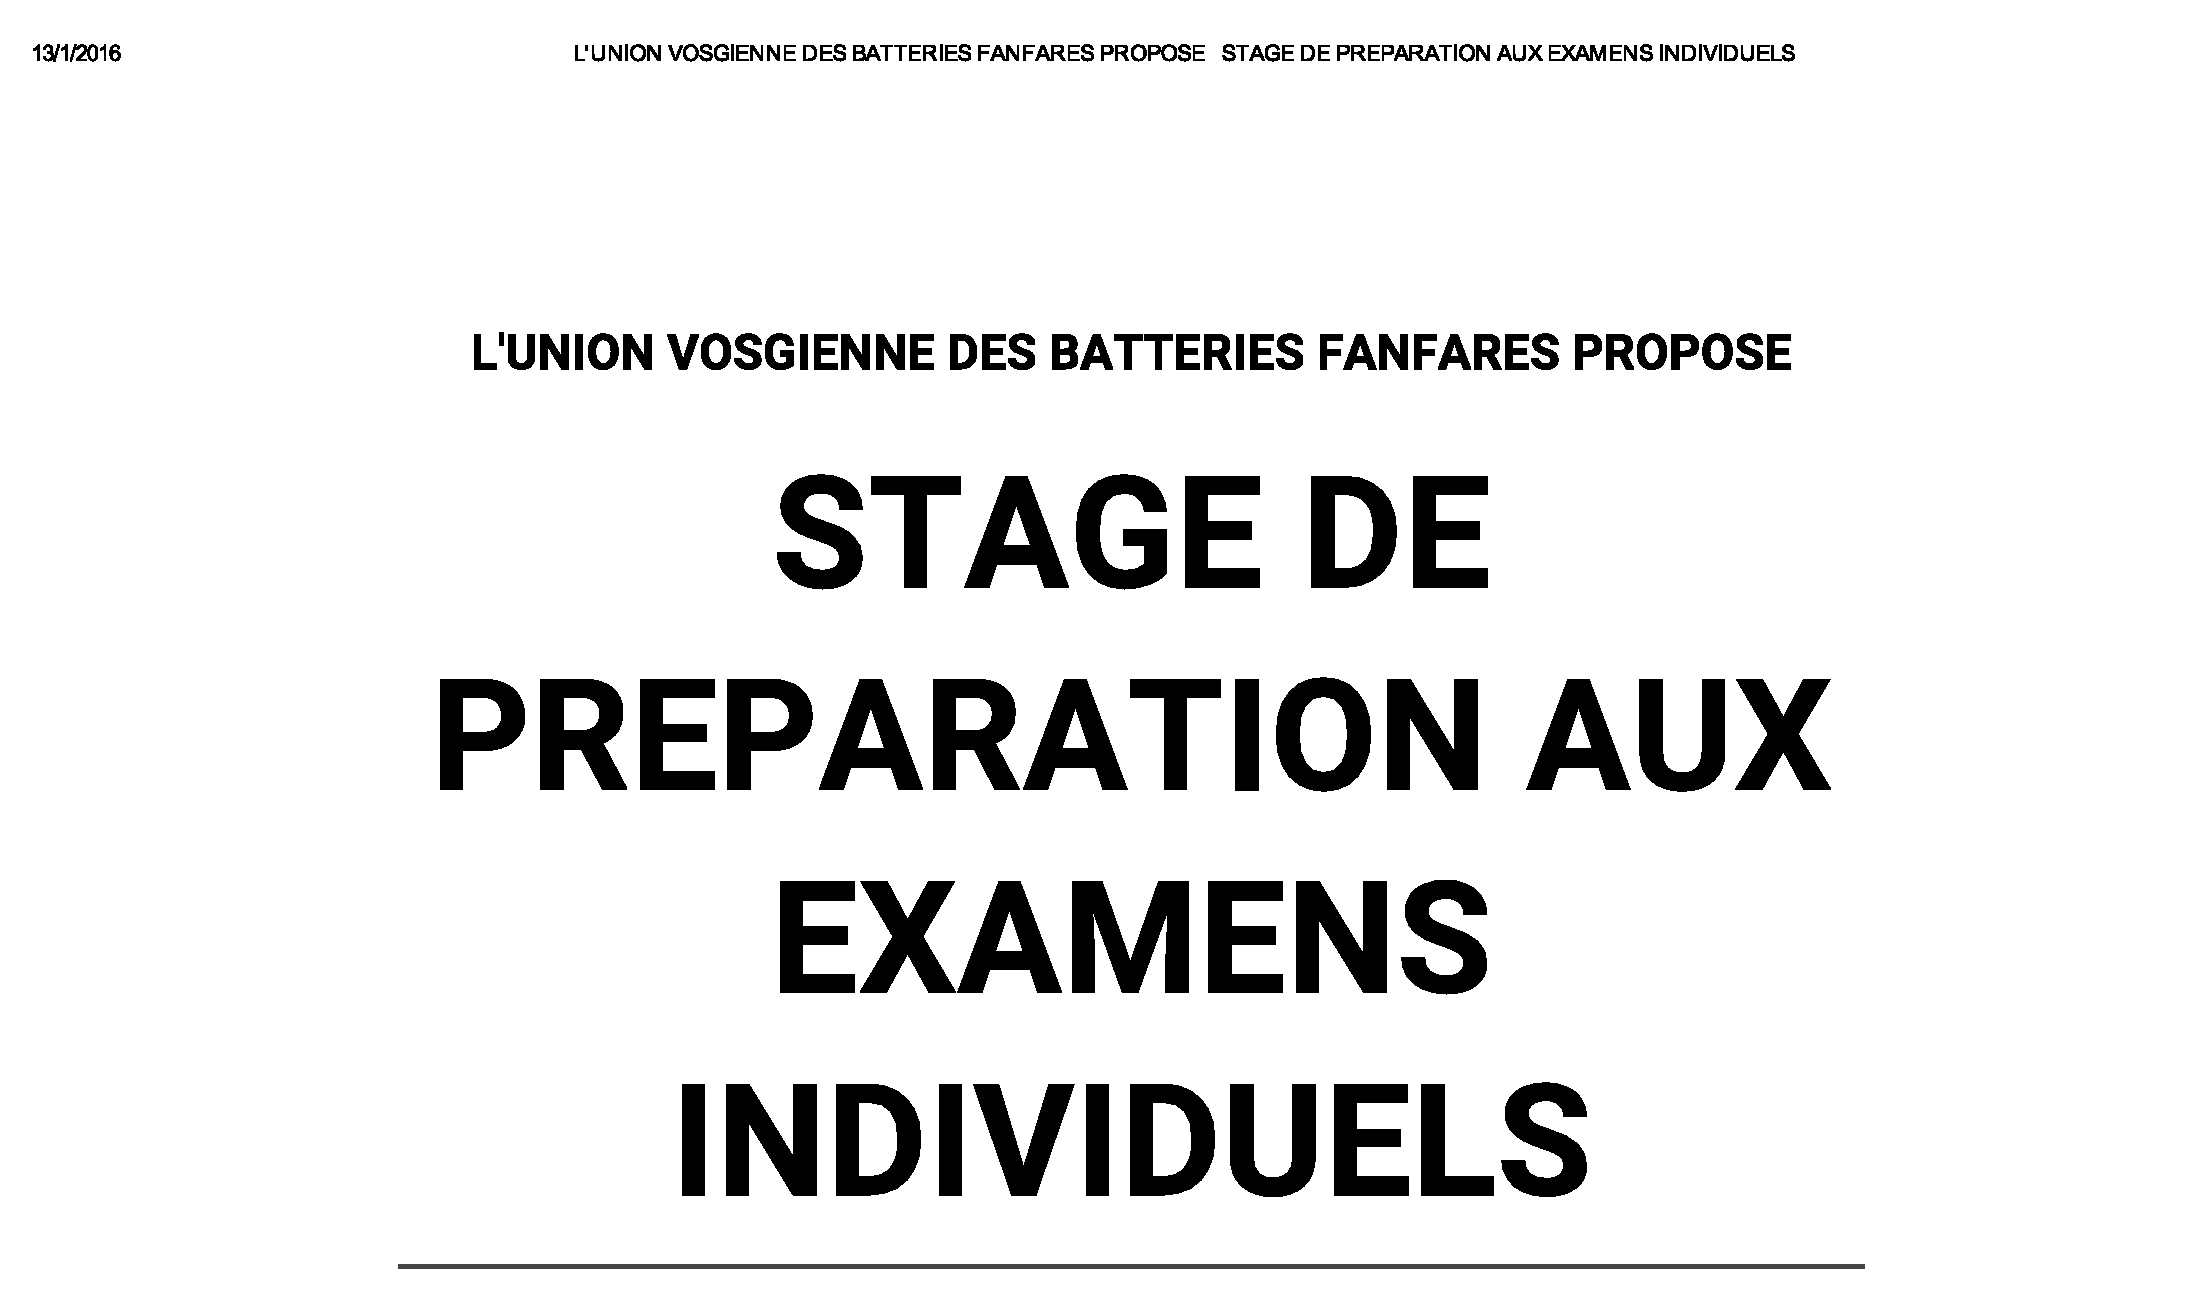 UVBF Stage examens individuels